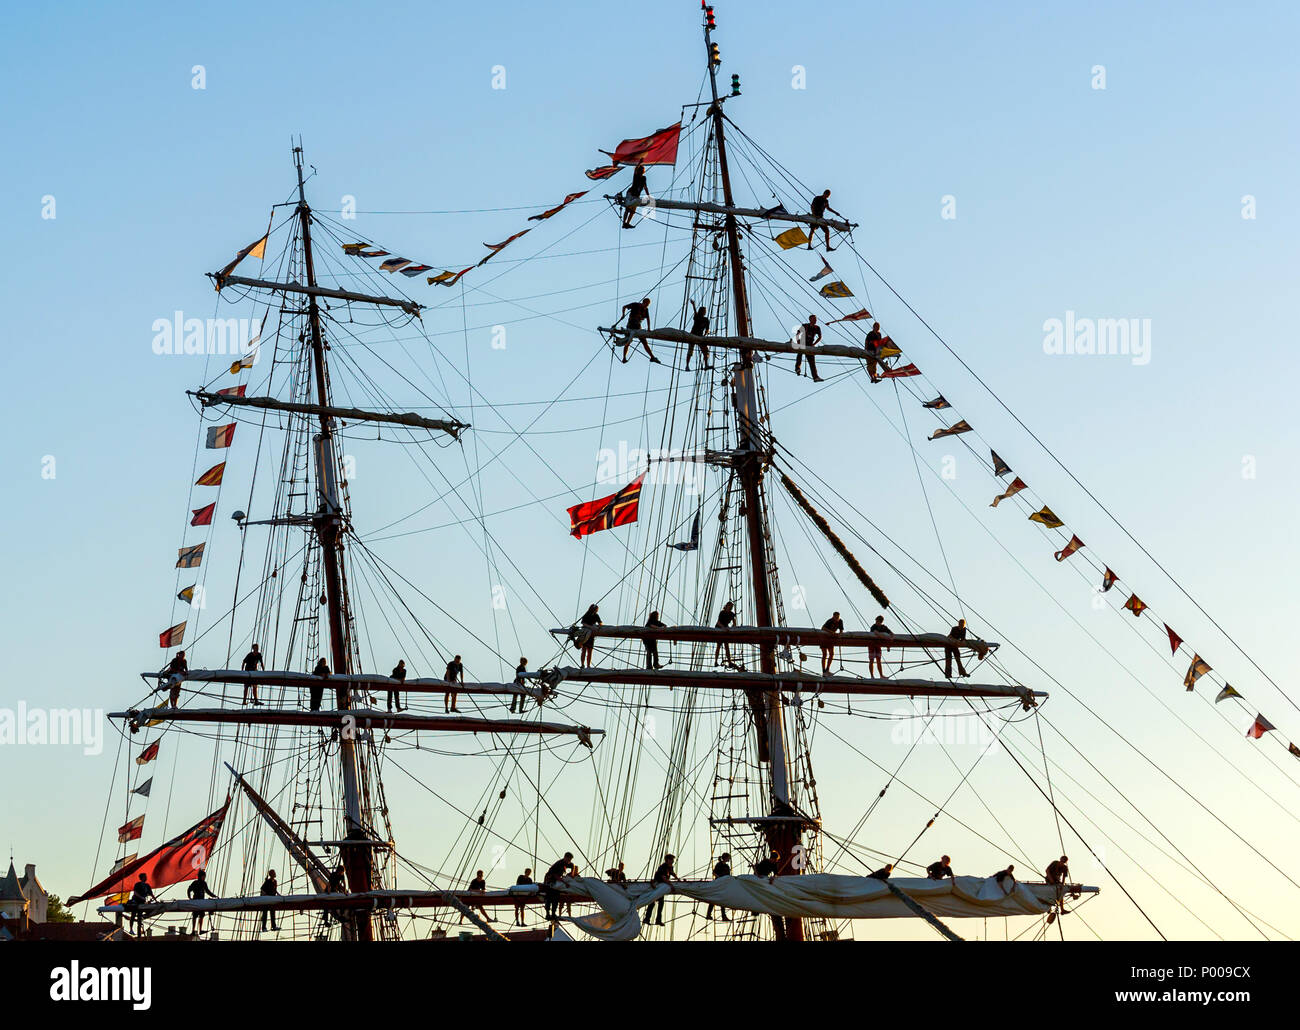 """Tall Ships Race 2008. Bergen, Norway - August 2008 The UK flagged """"Stavros S Niarchos"""" (brig) arriving port in the evening, with crew in the masts. Stock Photo"""